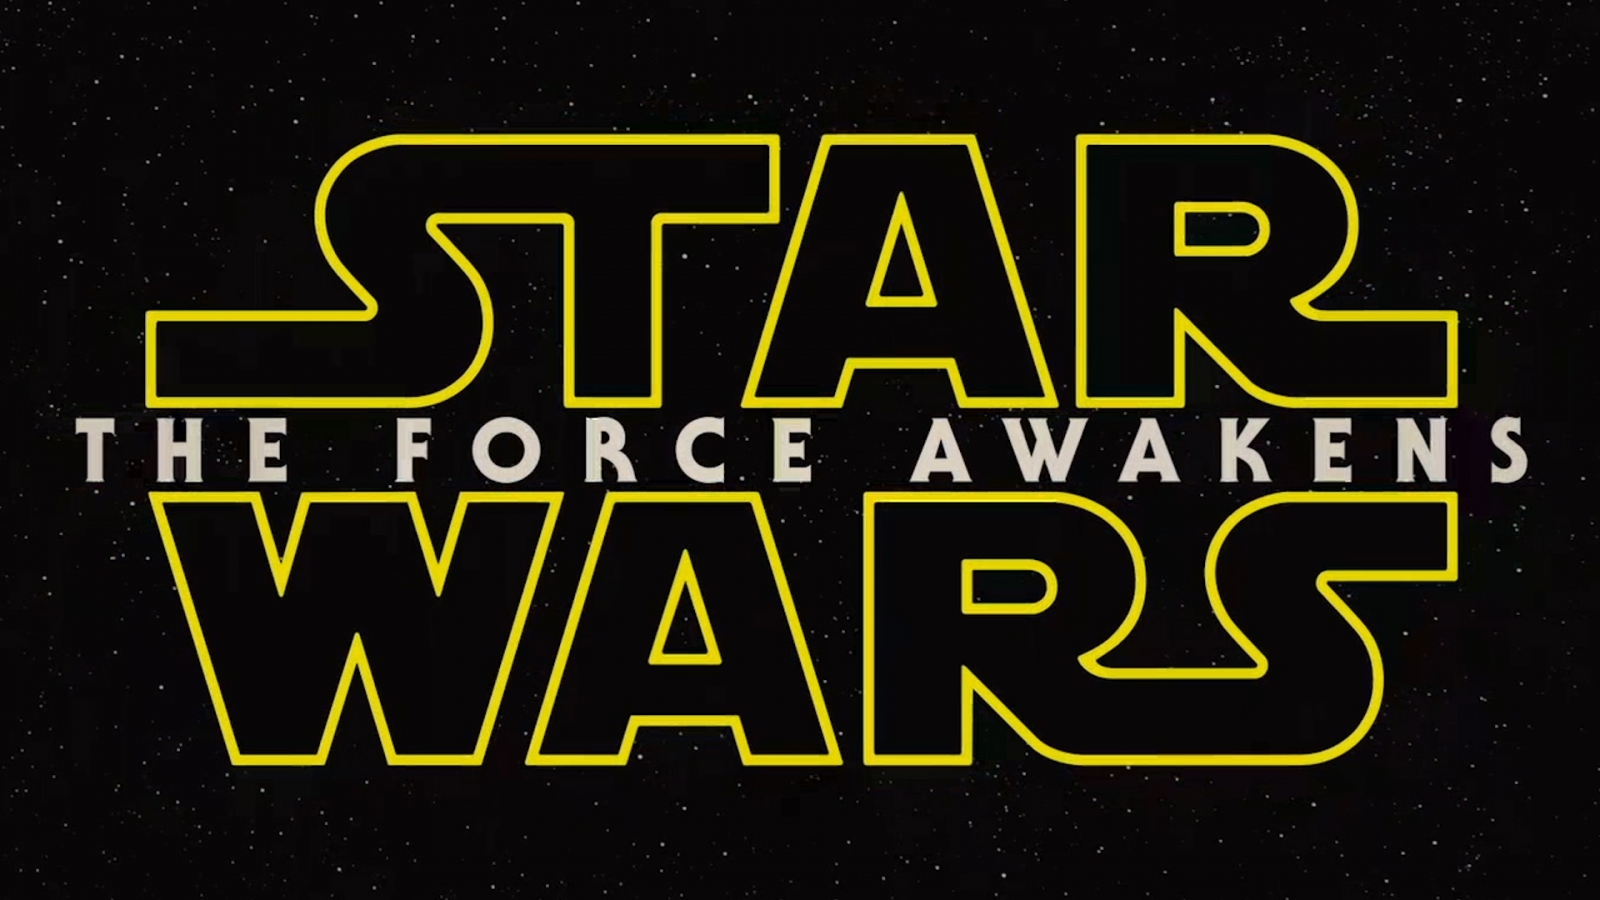 Star Wars Announces Official Movie Release Date